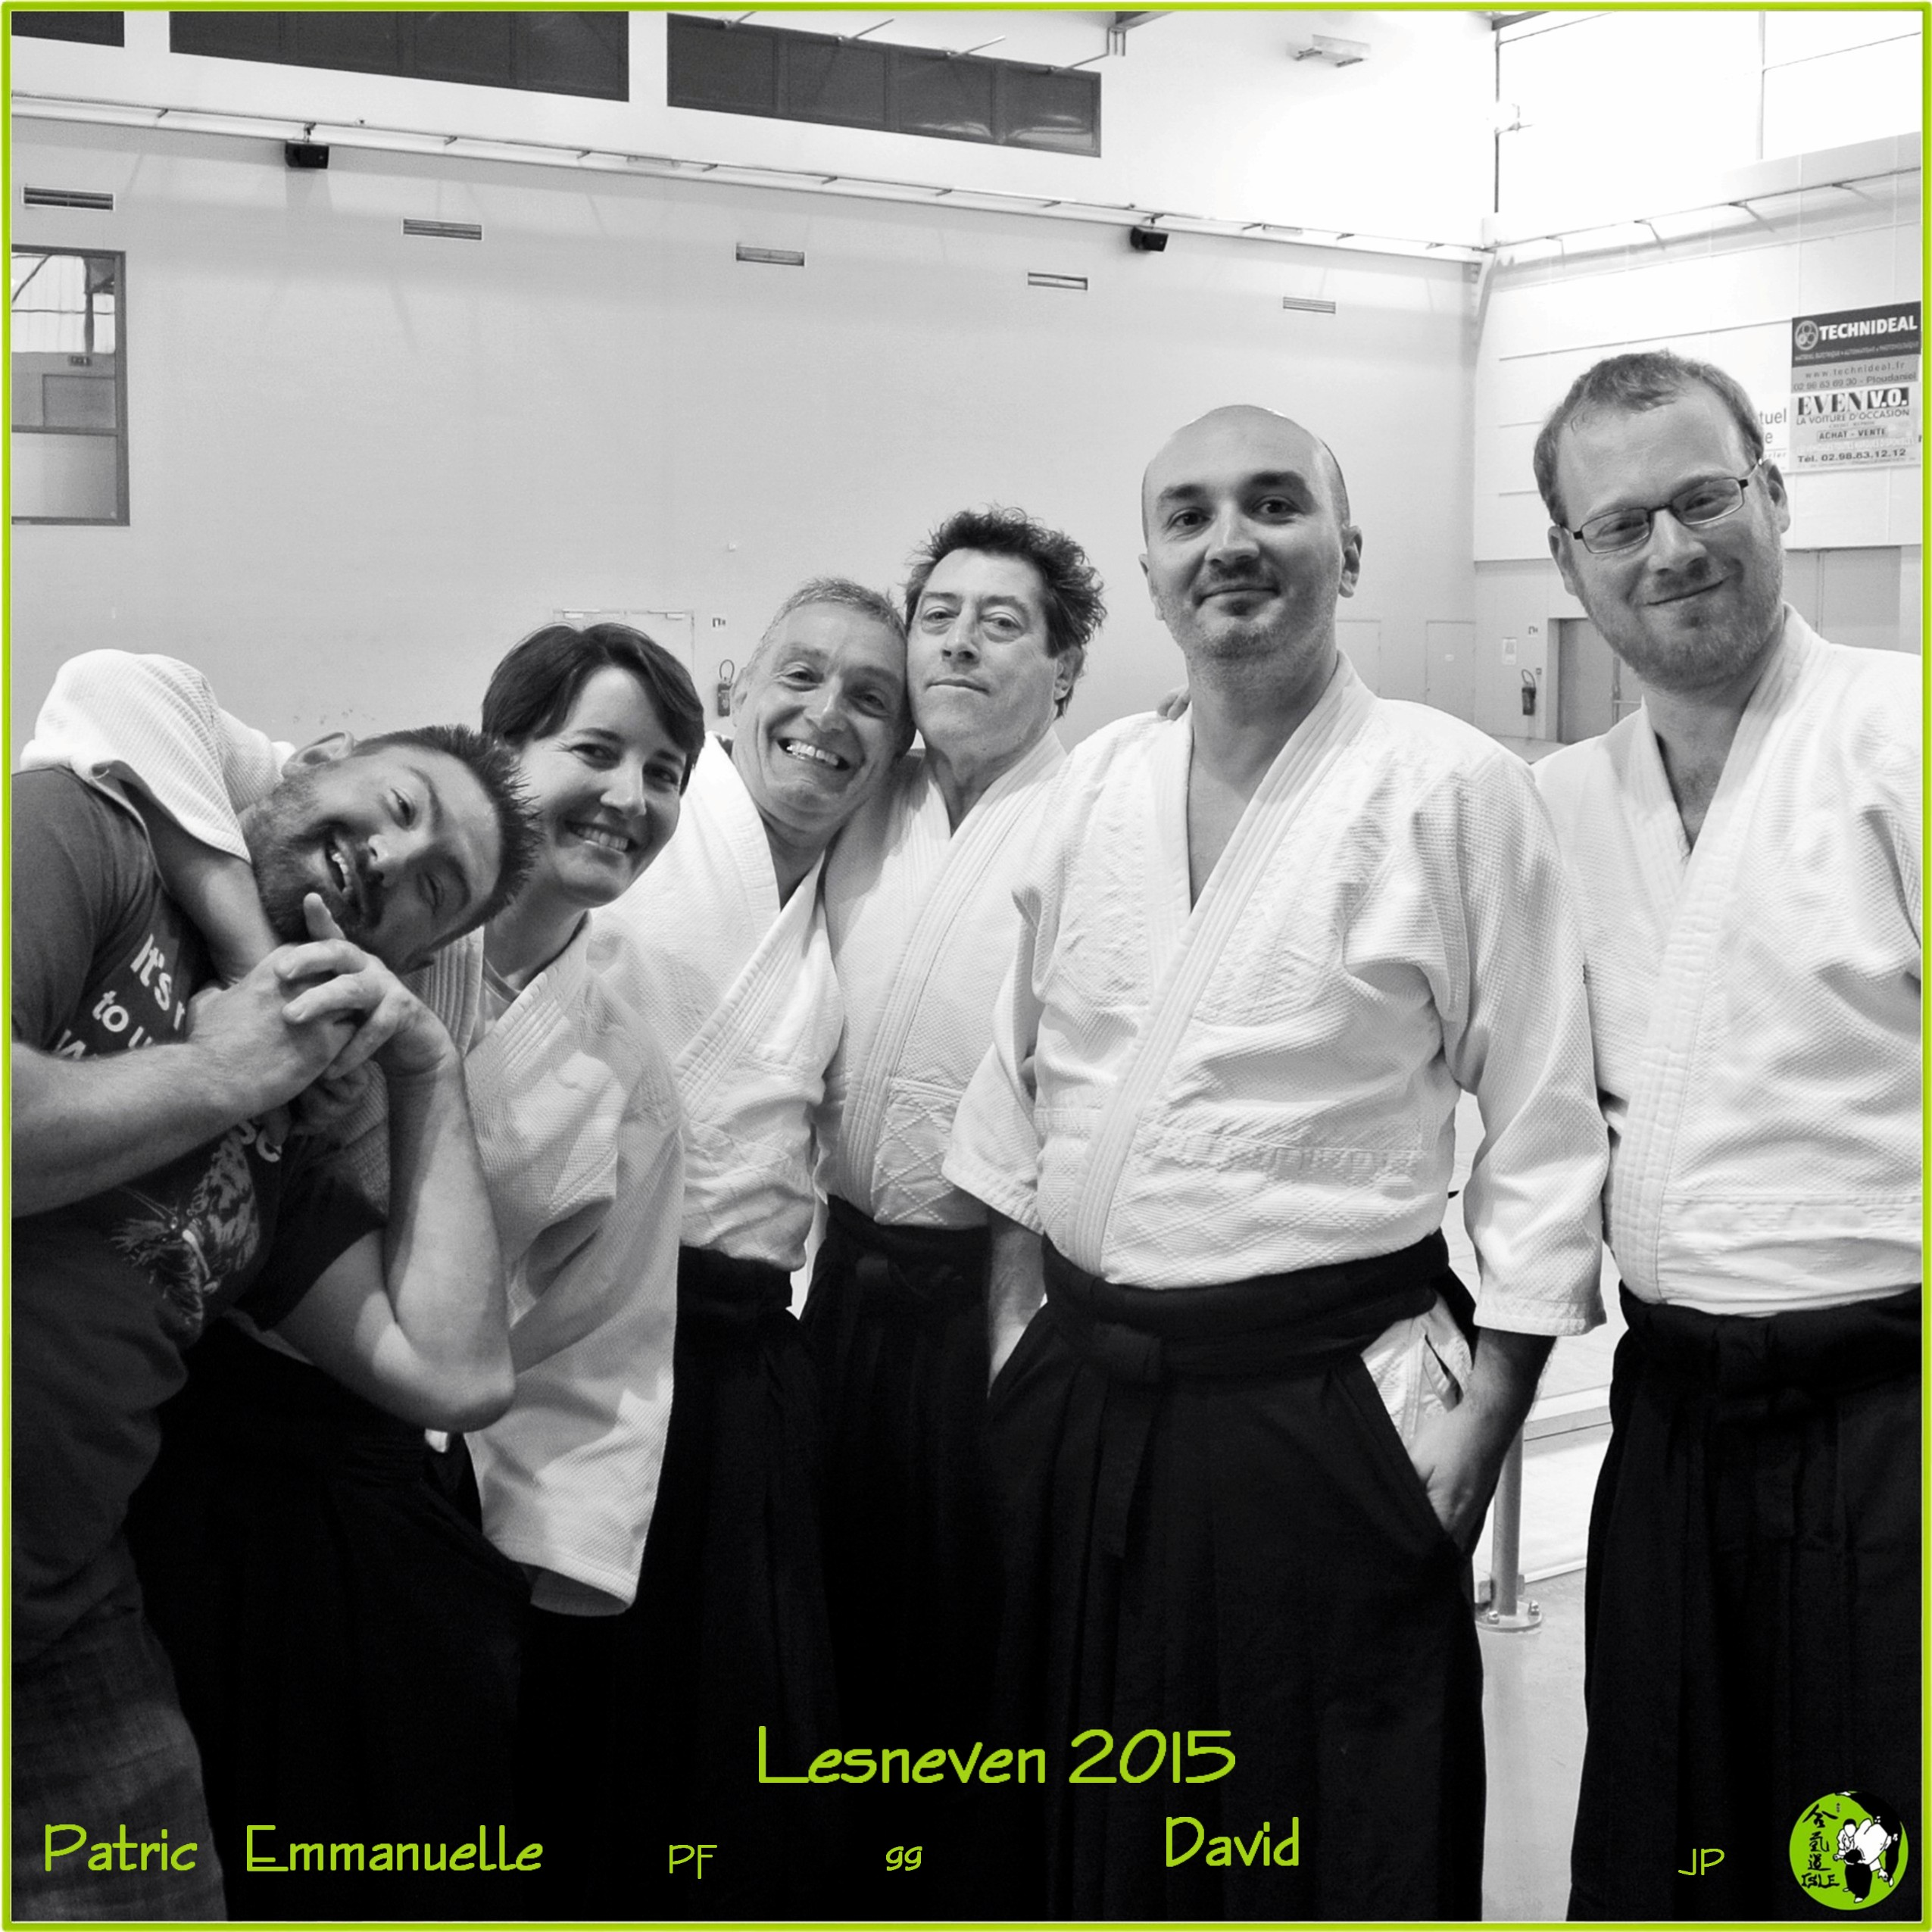 170403 73 Lesneven 2015 Pat, Manue et David.jpg - 938.7 kB